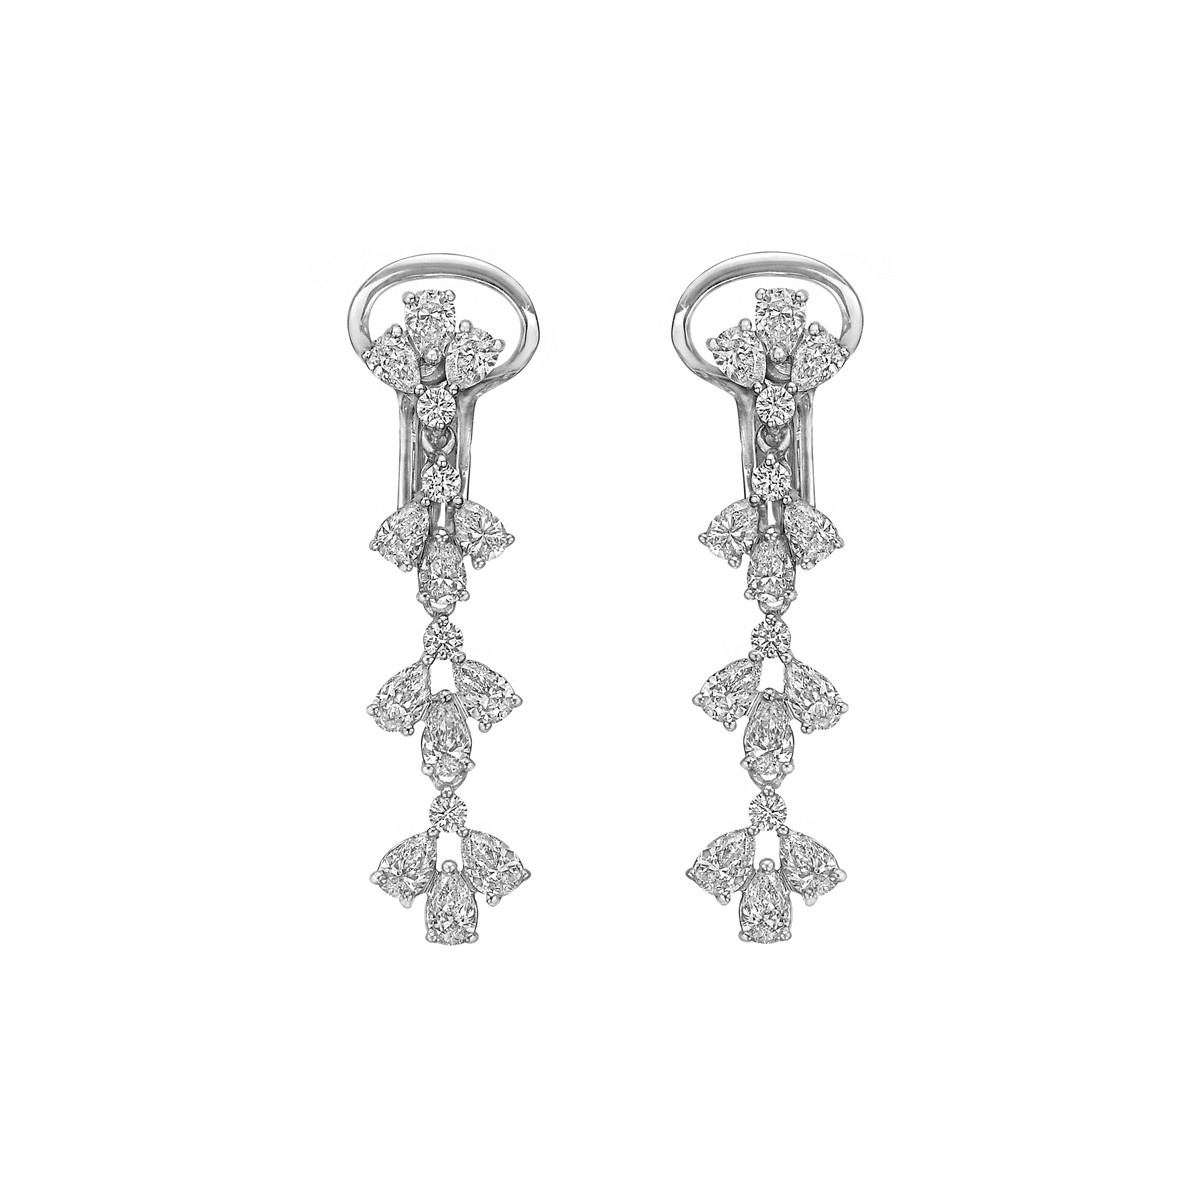 18k White Gold & Diamond Cluster Drop Earrings